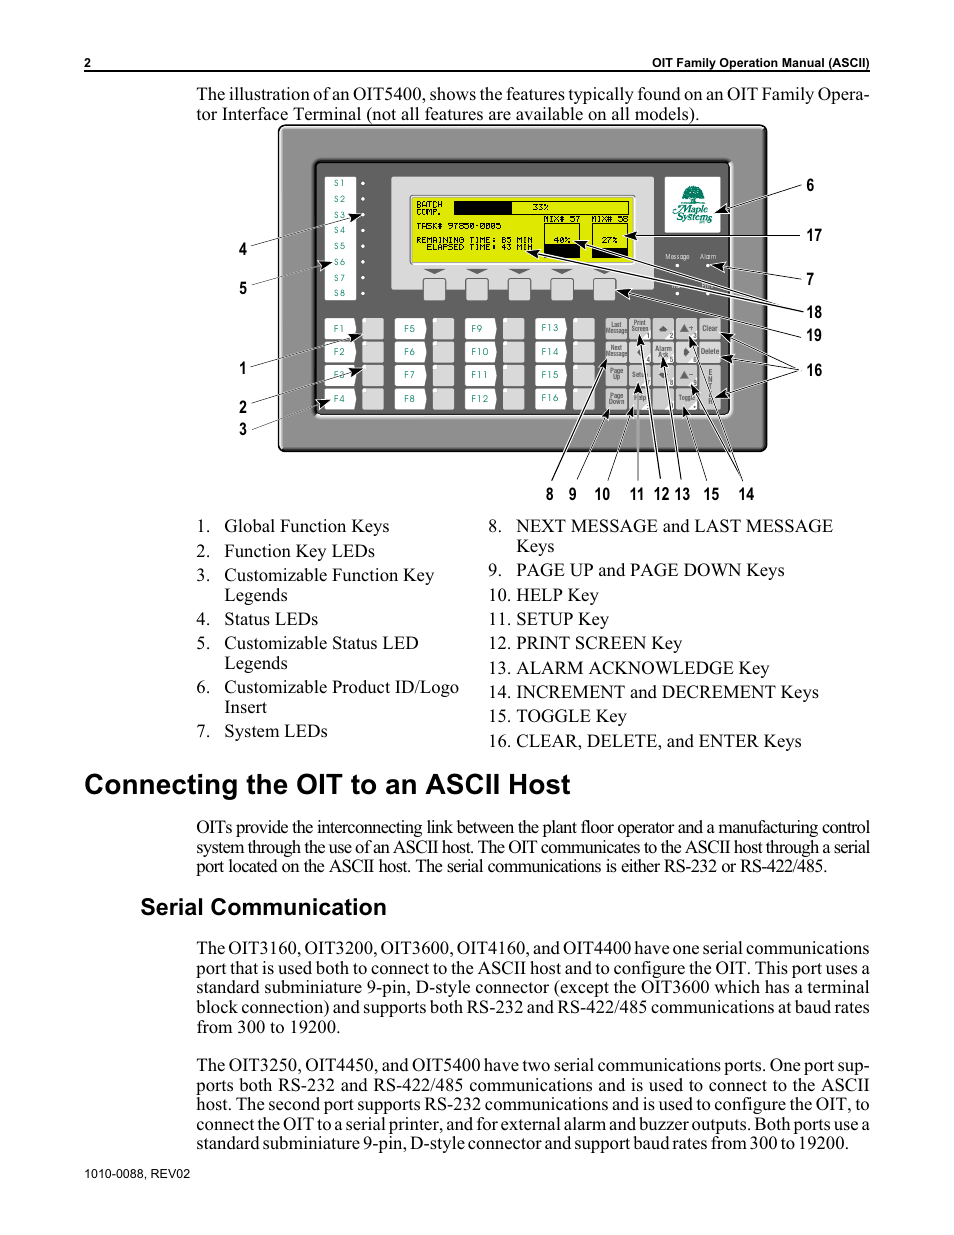 Connecting the oit to an ascii host, Serial communication